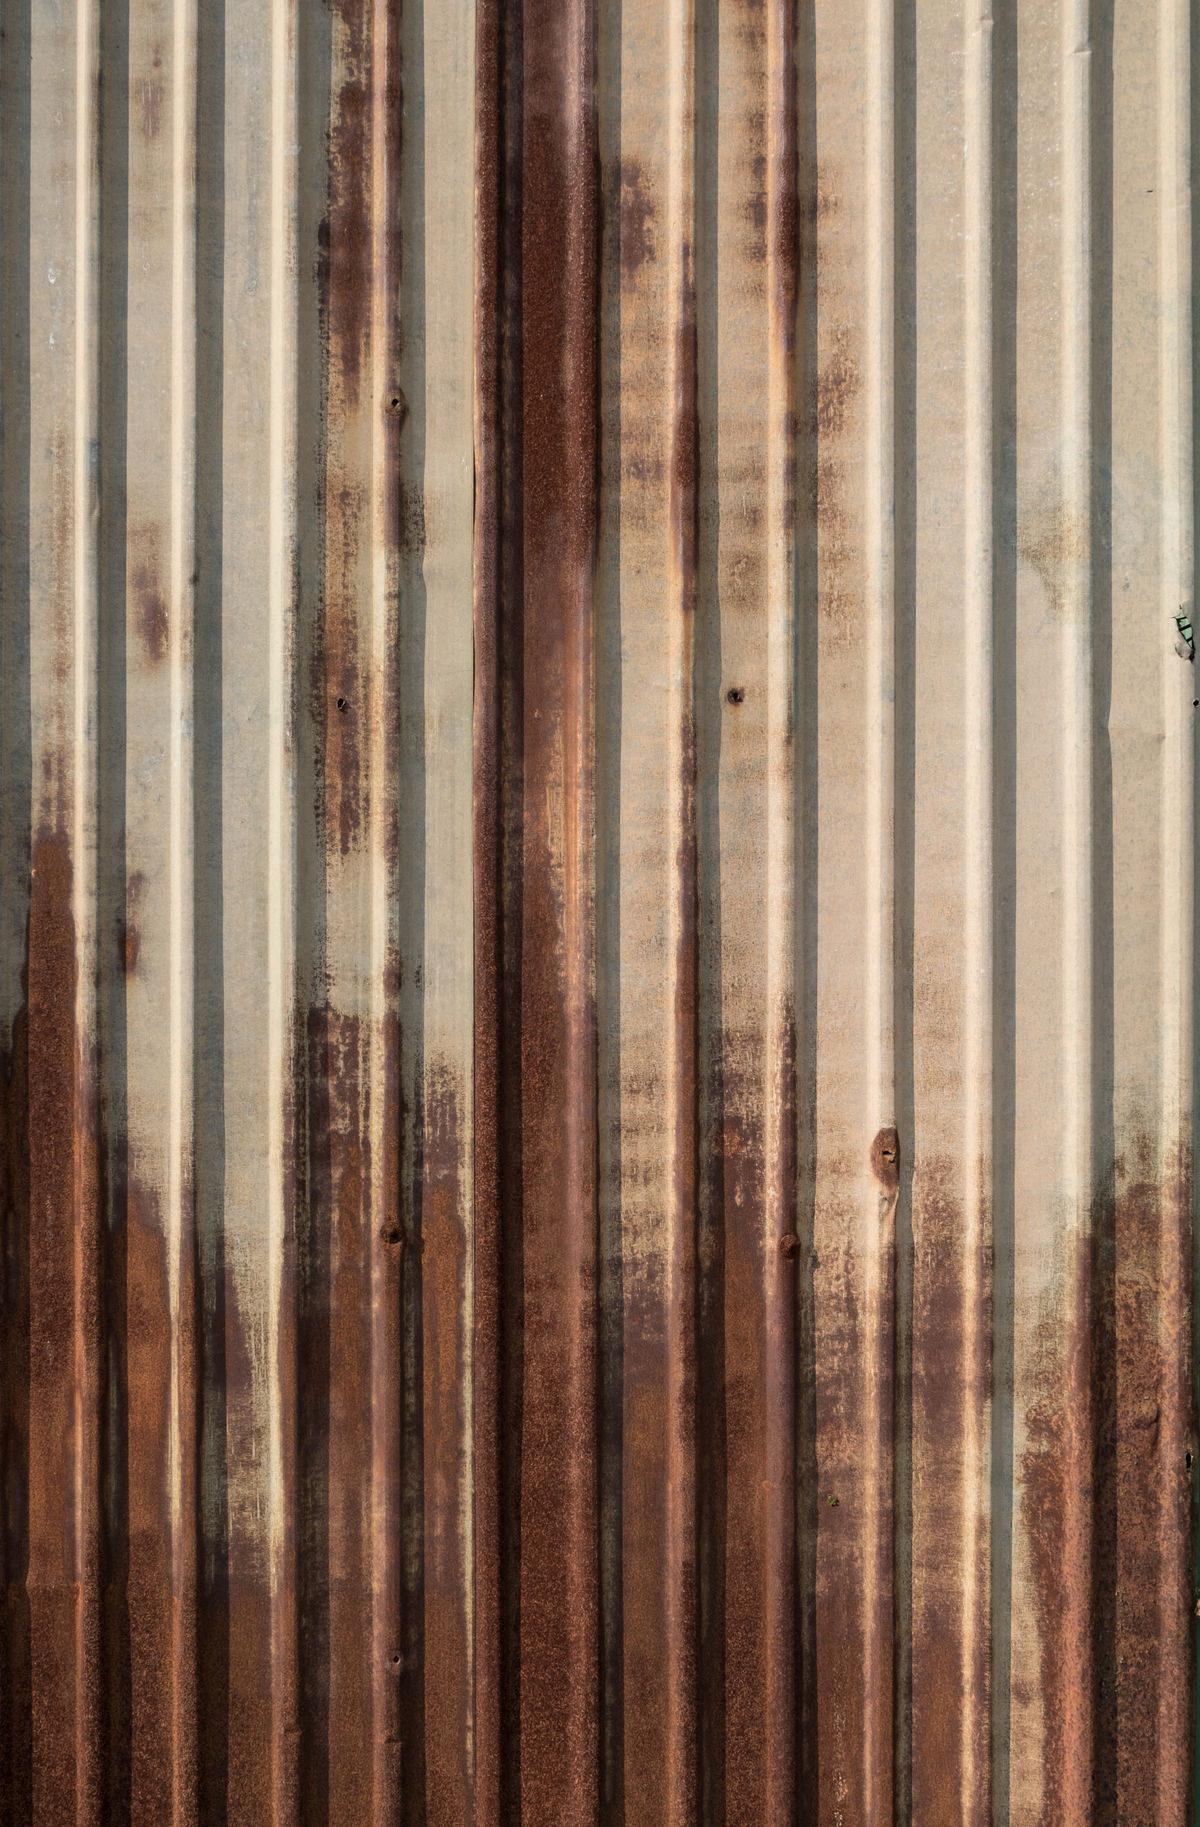 Rusted green zinc fence in sunny day. Green Color Backgrounds Corrugated Iron Fences Full Frame Groovemetal Metal Sheets Old Outdoors Pattern Roofing Rusty Textured  Vintage Zinc